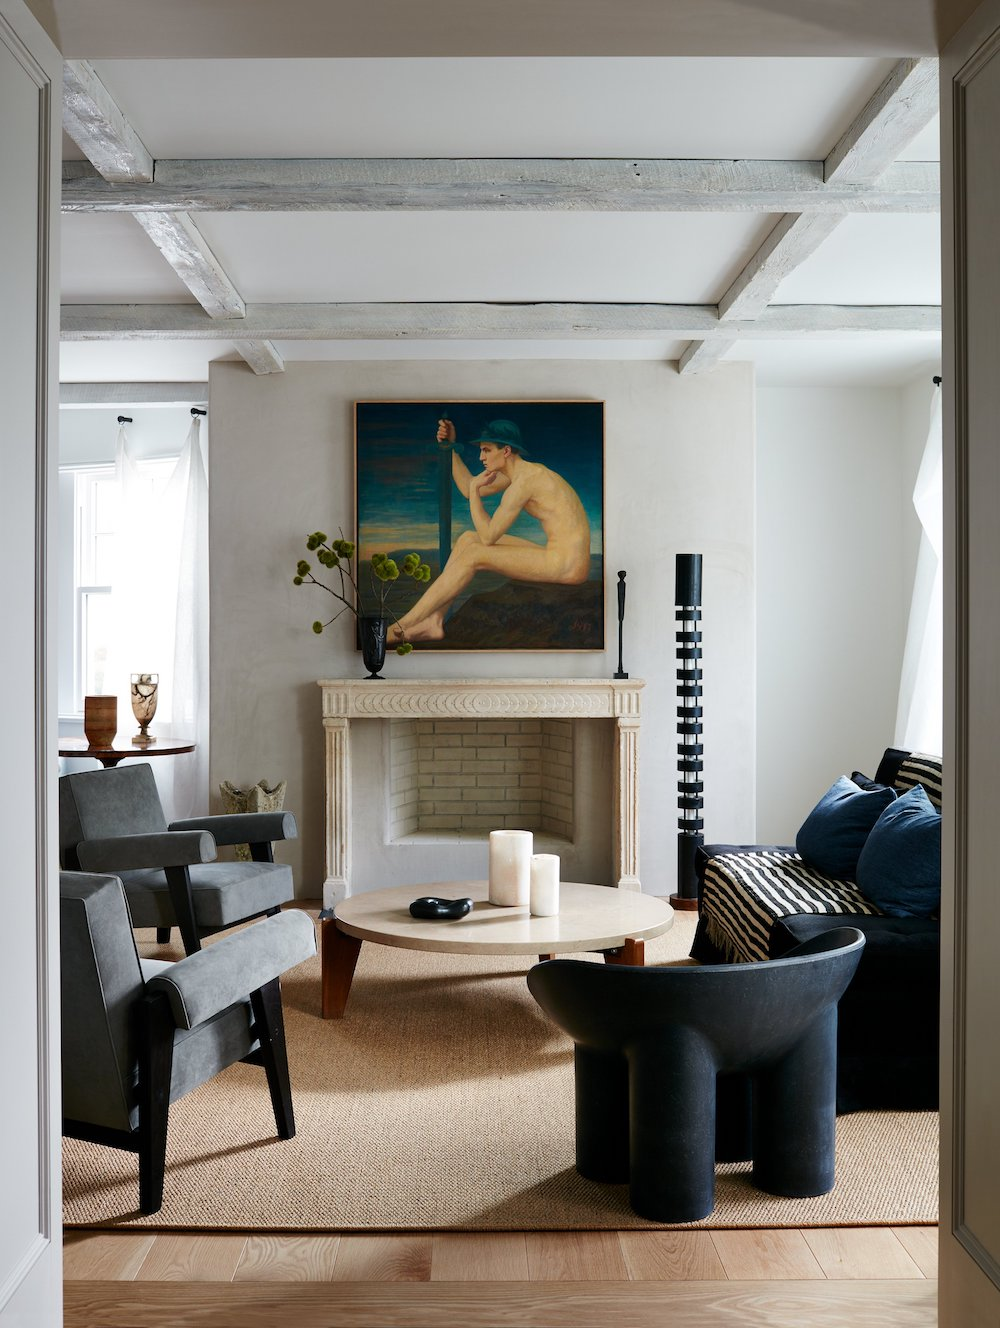 Can a Room Help You be in the Moment? on apartment 34